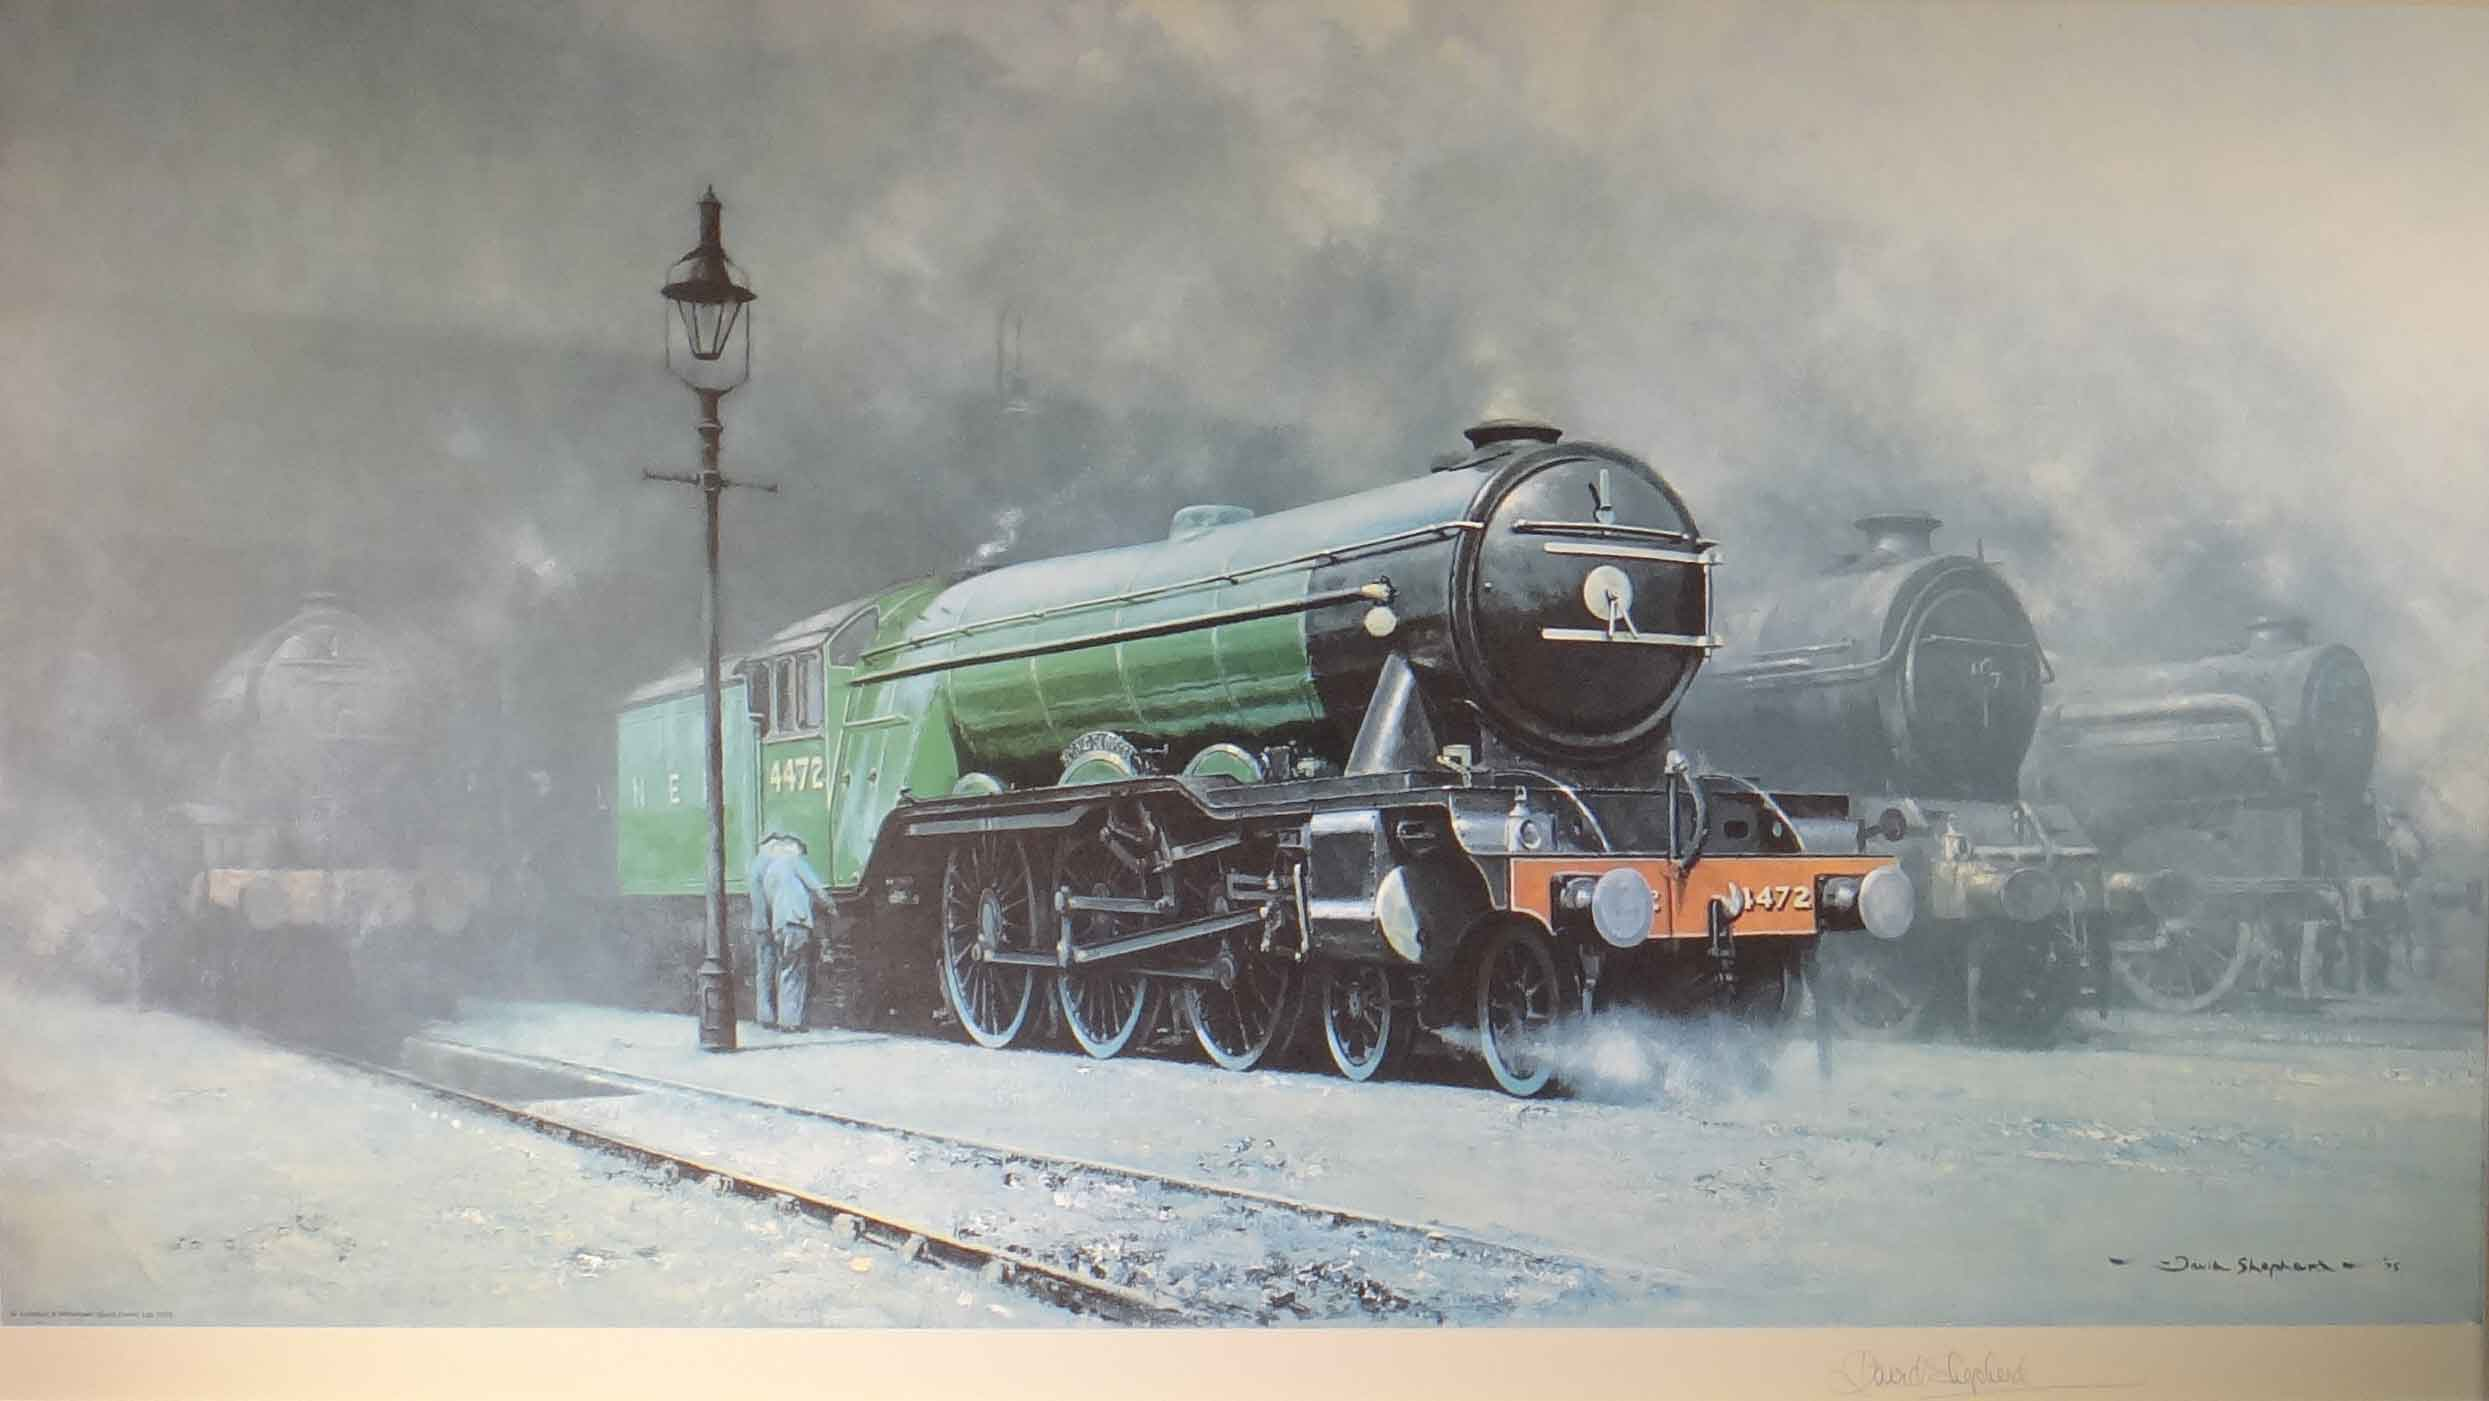 David Shepherd Scotsman 39 34 Paintings Prints